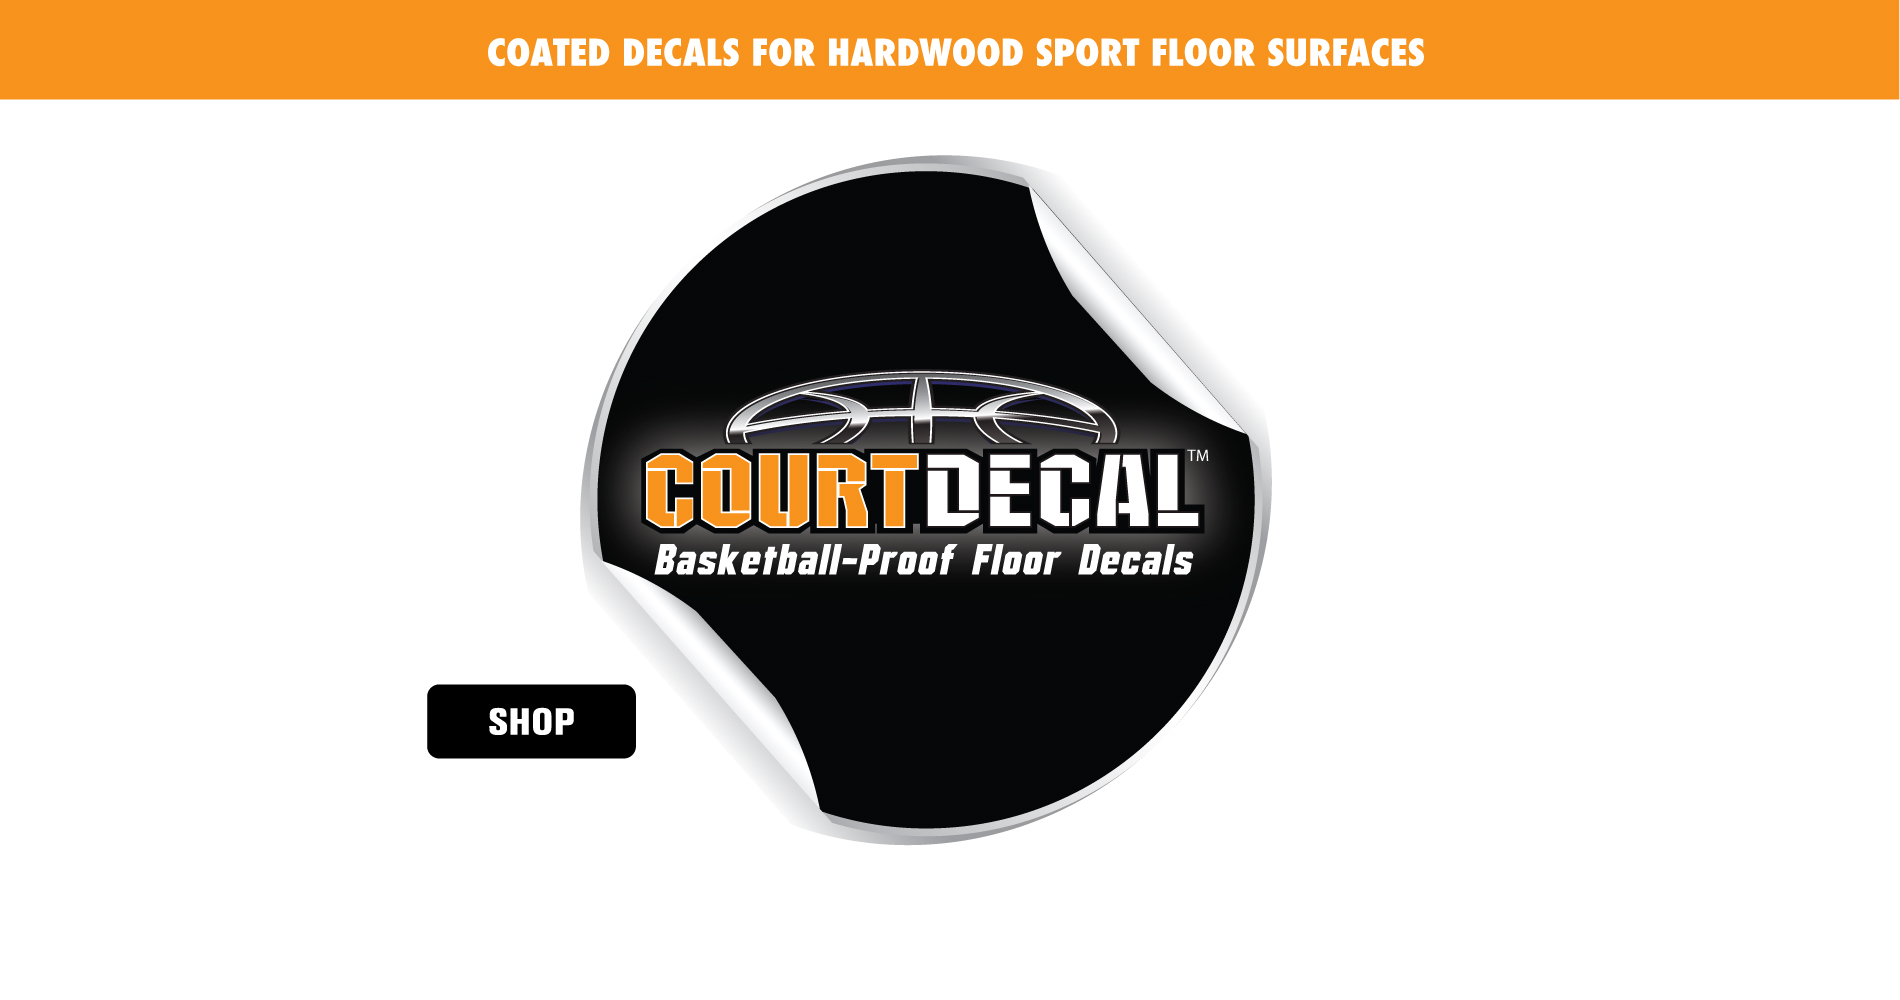 COURTDECAL-BASKETBALL-PROOF-VINYL-FLOOR-COATED-DECALS-GLOSS